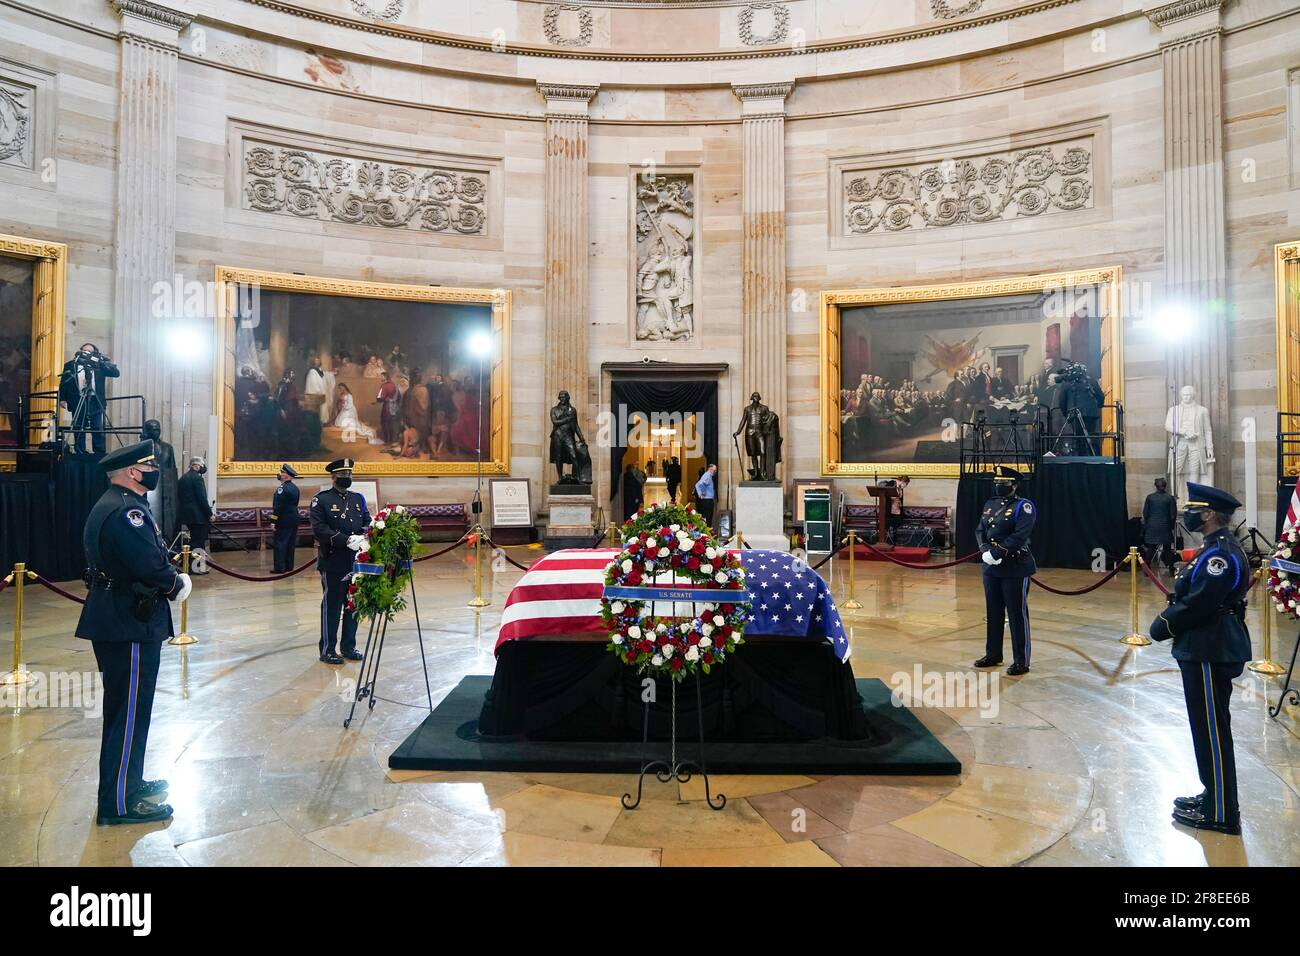 "Washington, Stati Uniti d'America. 13 Apr 2021. Una guardia d'onore della polizia del Campidoglio degli Stati Uniti circonda il casket di ufficiale della polizia del Campidoglio degli Stati Uniti William ""Billy"" Evans mentre si trova in onore al Campidoglio a Washington, martedì 13 aprile 2021.Credit: Jacquelyn Martin/Pool via CNP 